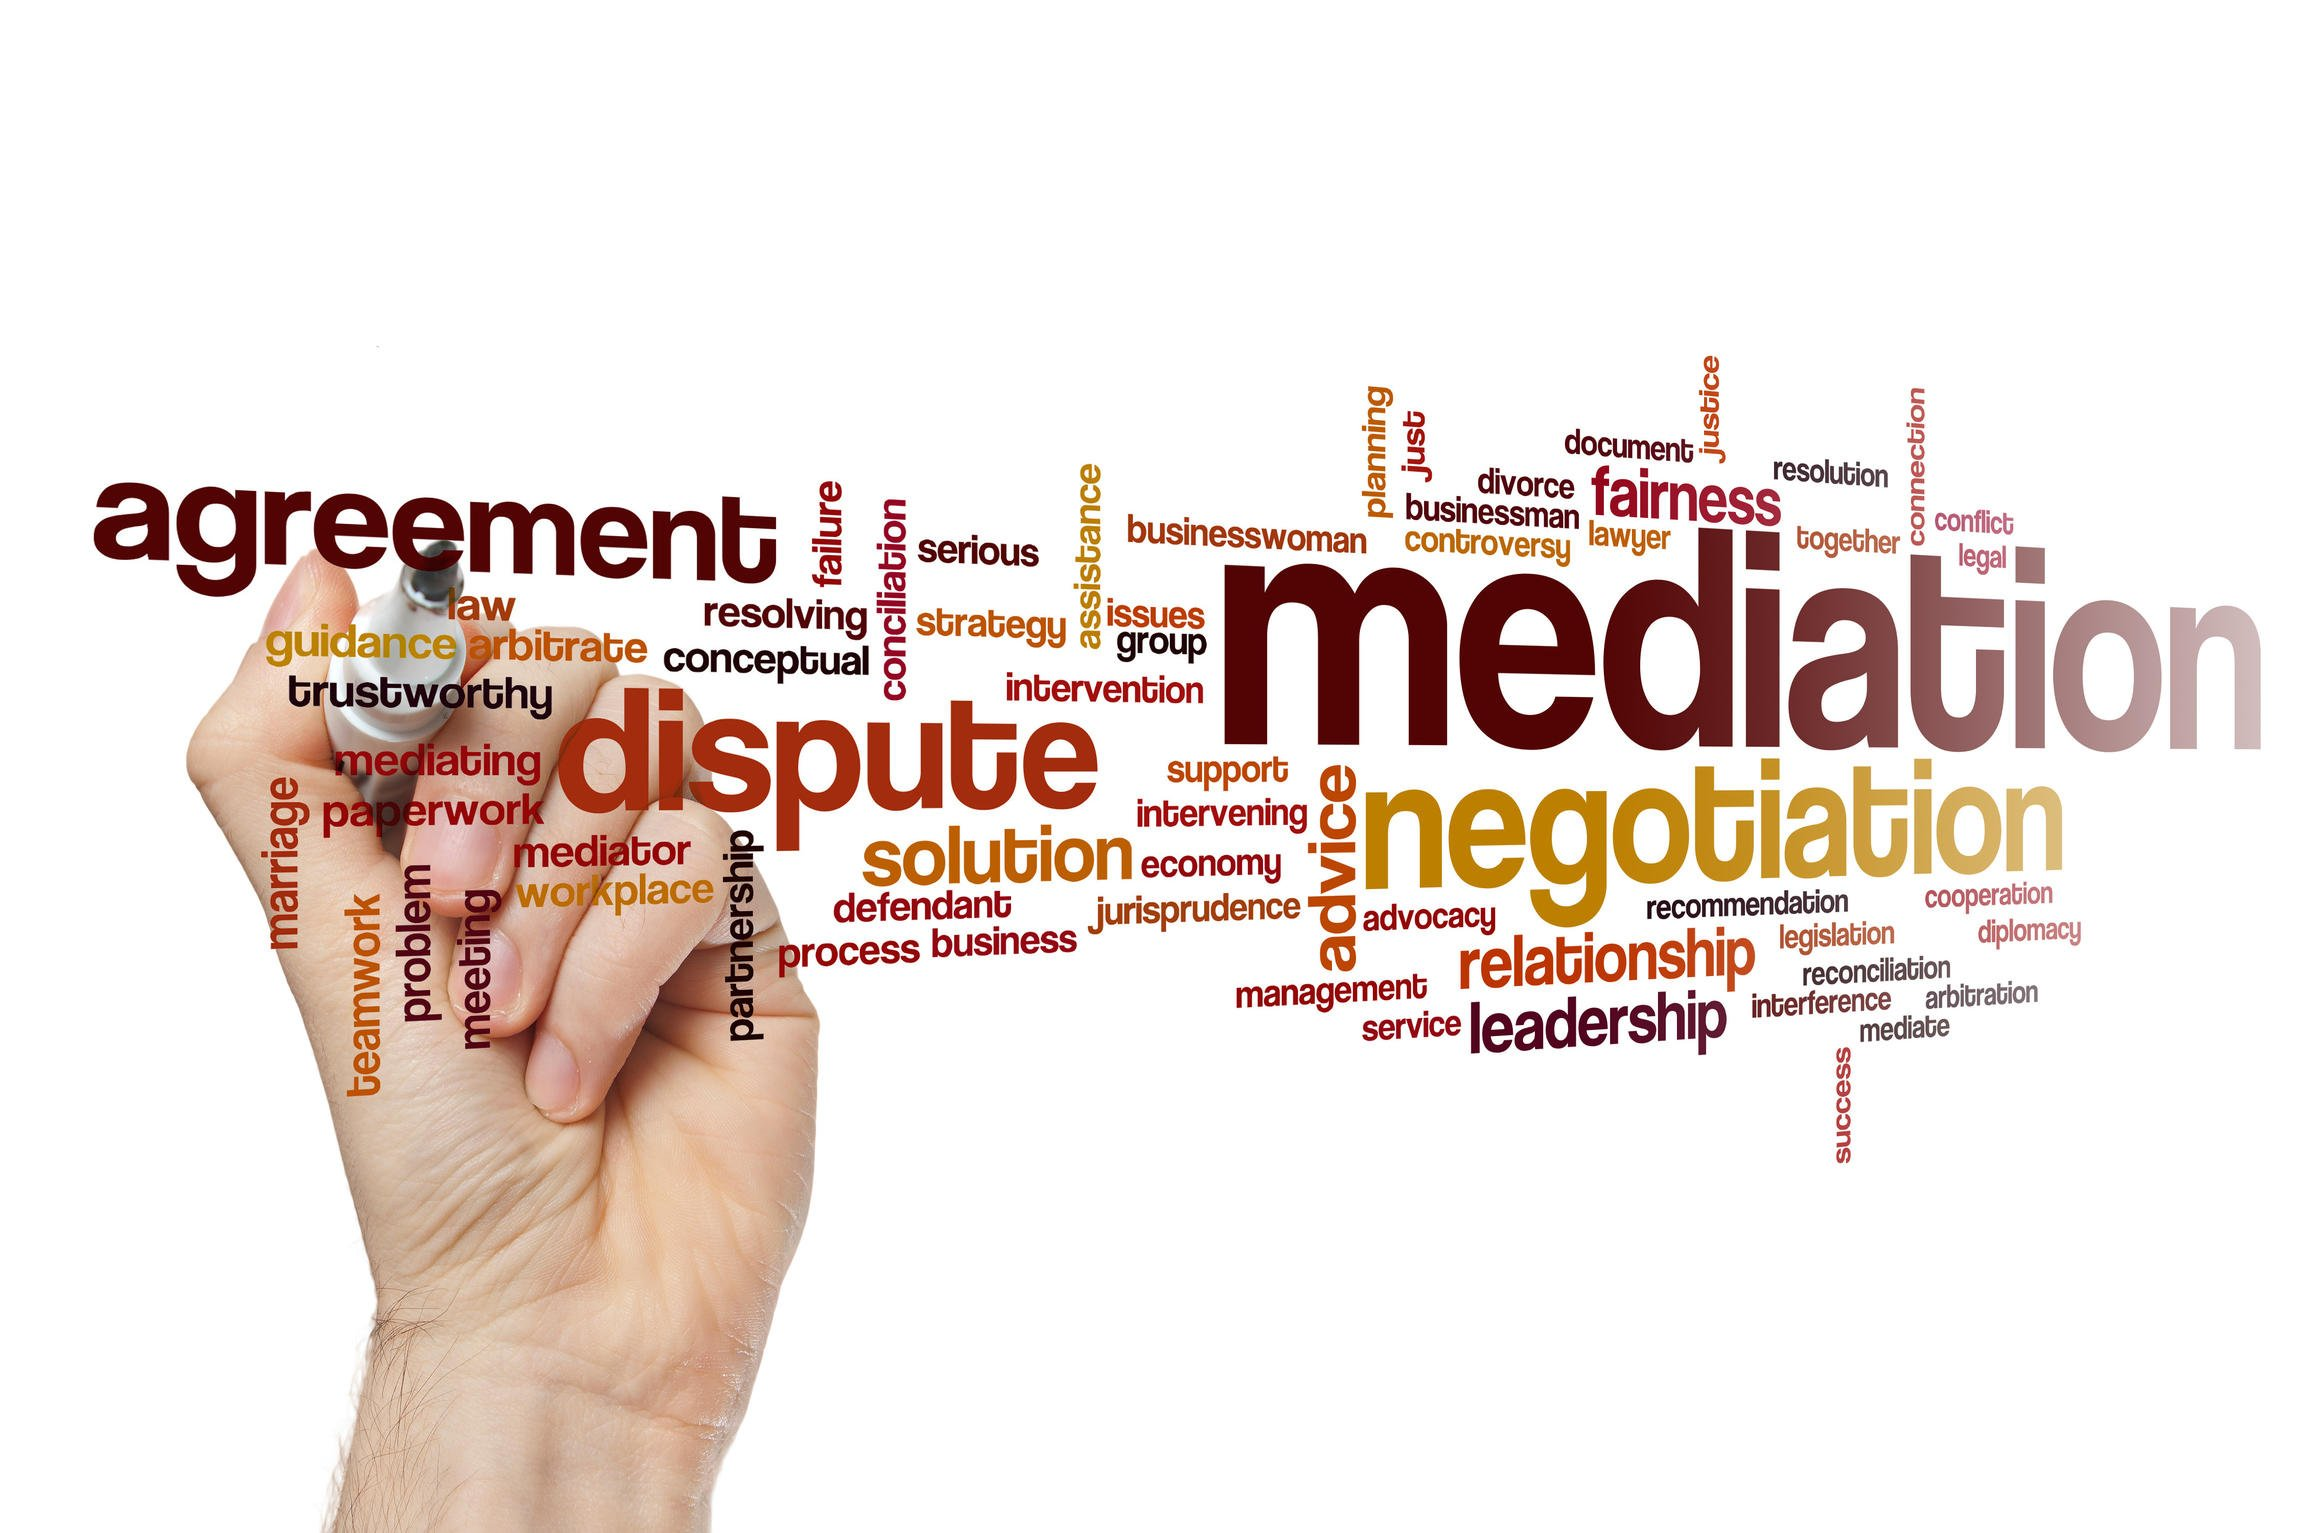 """an analysis of mediation a dispute resolution process and diplomacy Diplomacy 1 diplomacy is the process of reconciling the it is sometimes called """"alternative dispute resolution ch03_testbank - international business law."""